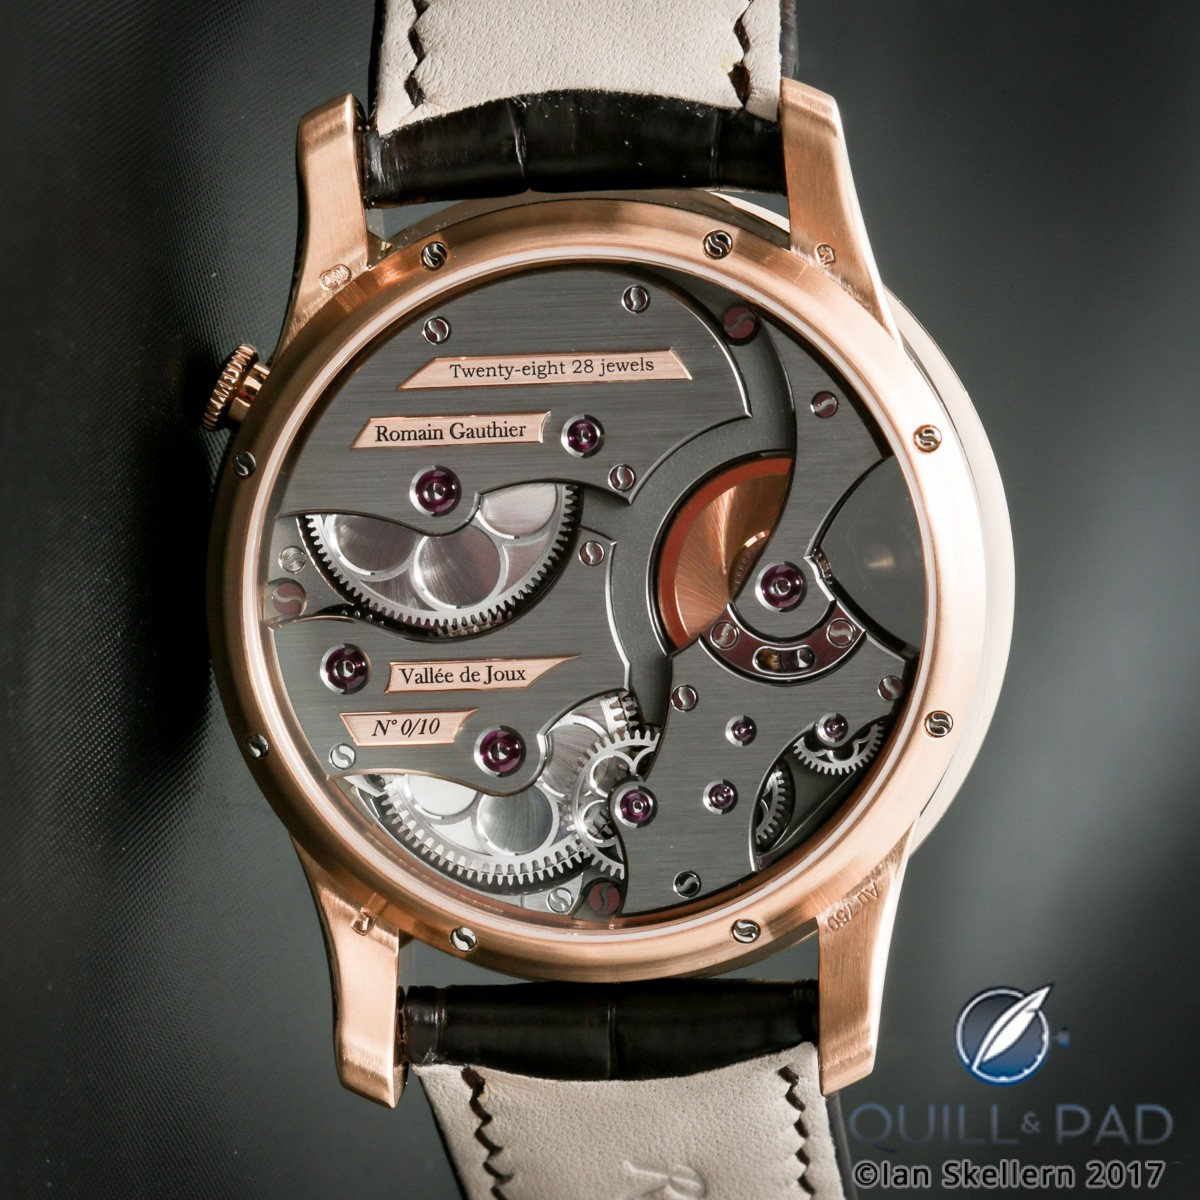 View through the display back of the Romain Gauthier Insight Micro-Rotor in red gold